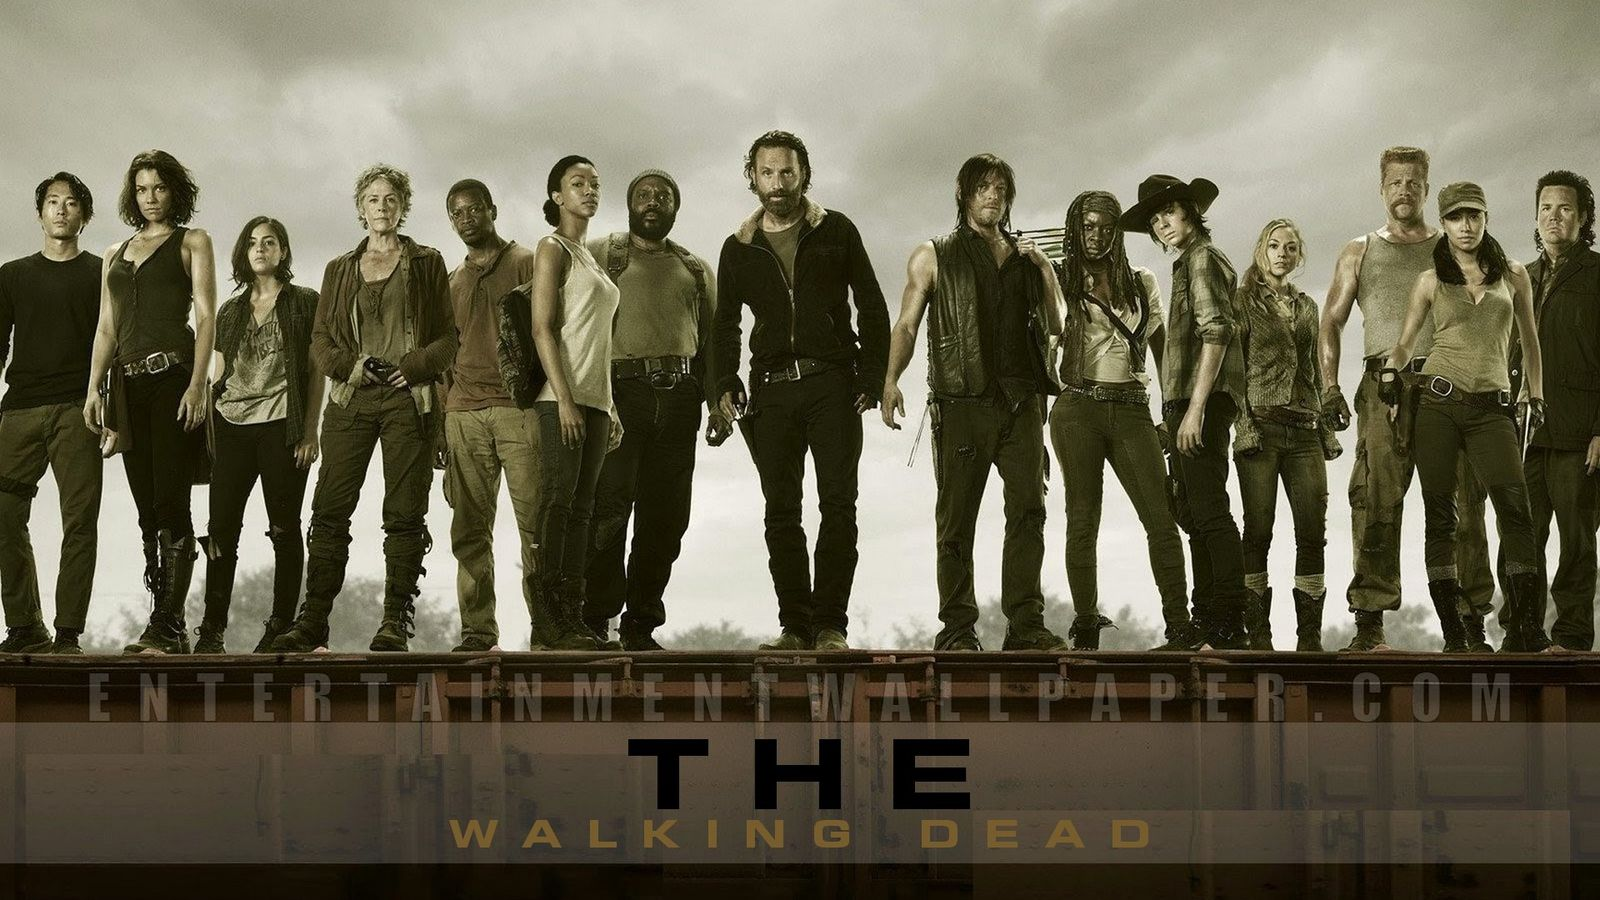 48 Walking Dead Dual Monitor Wallpaper On Wallpapersafari